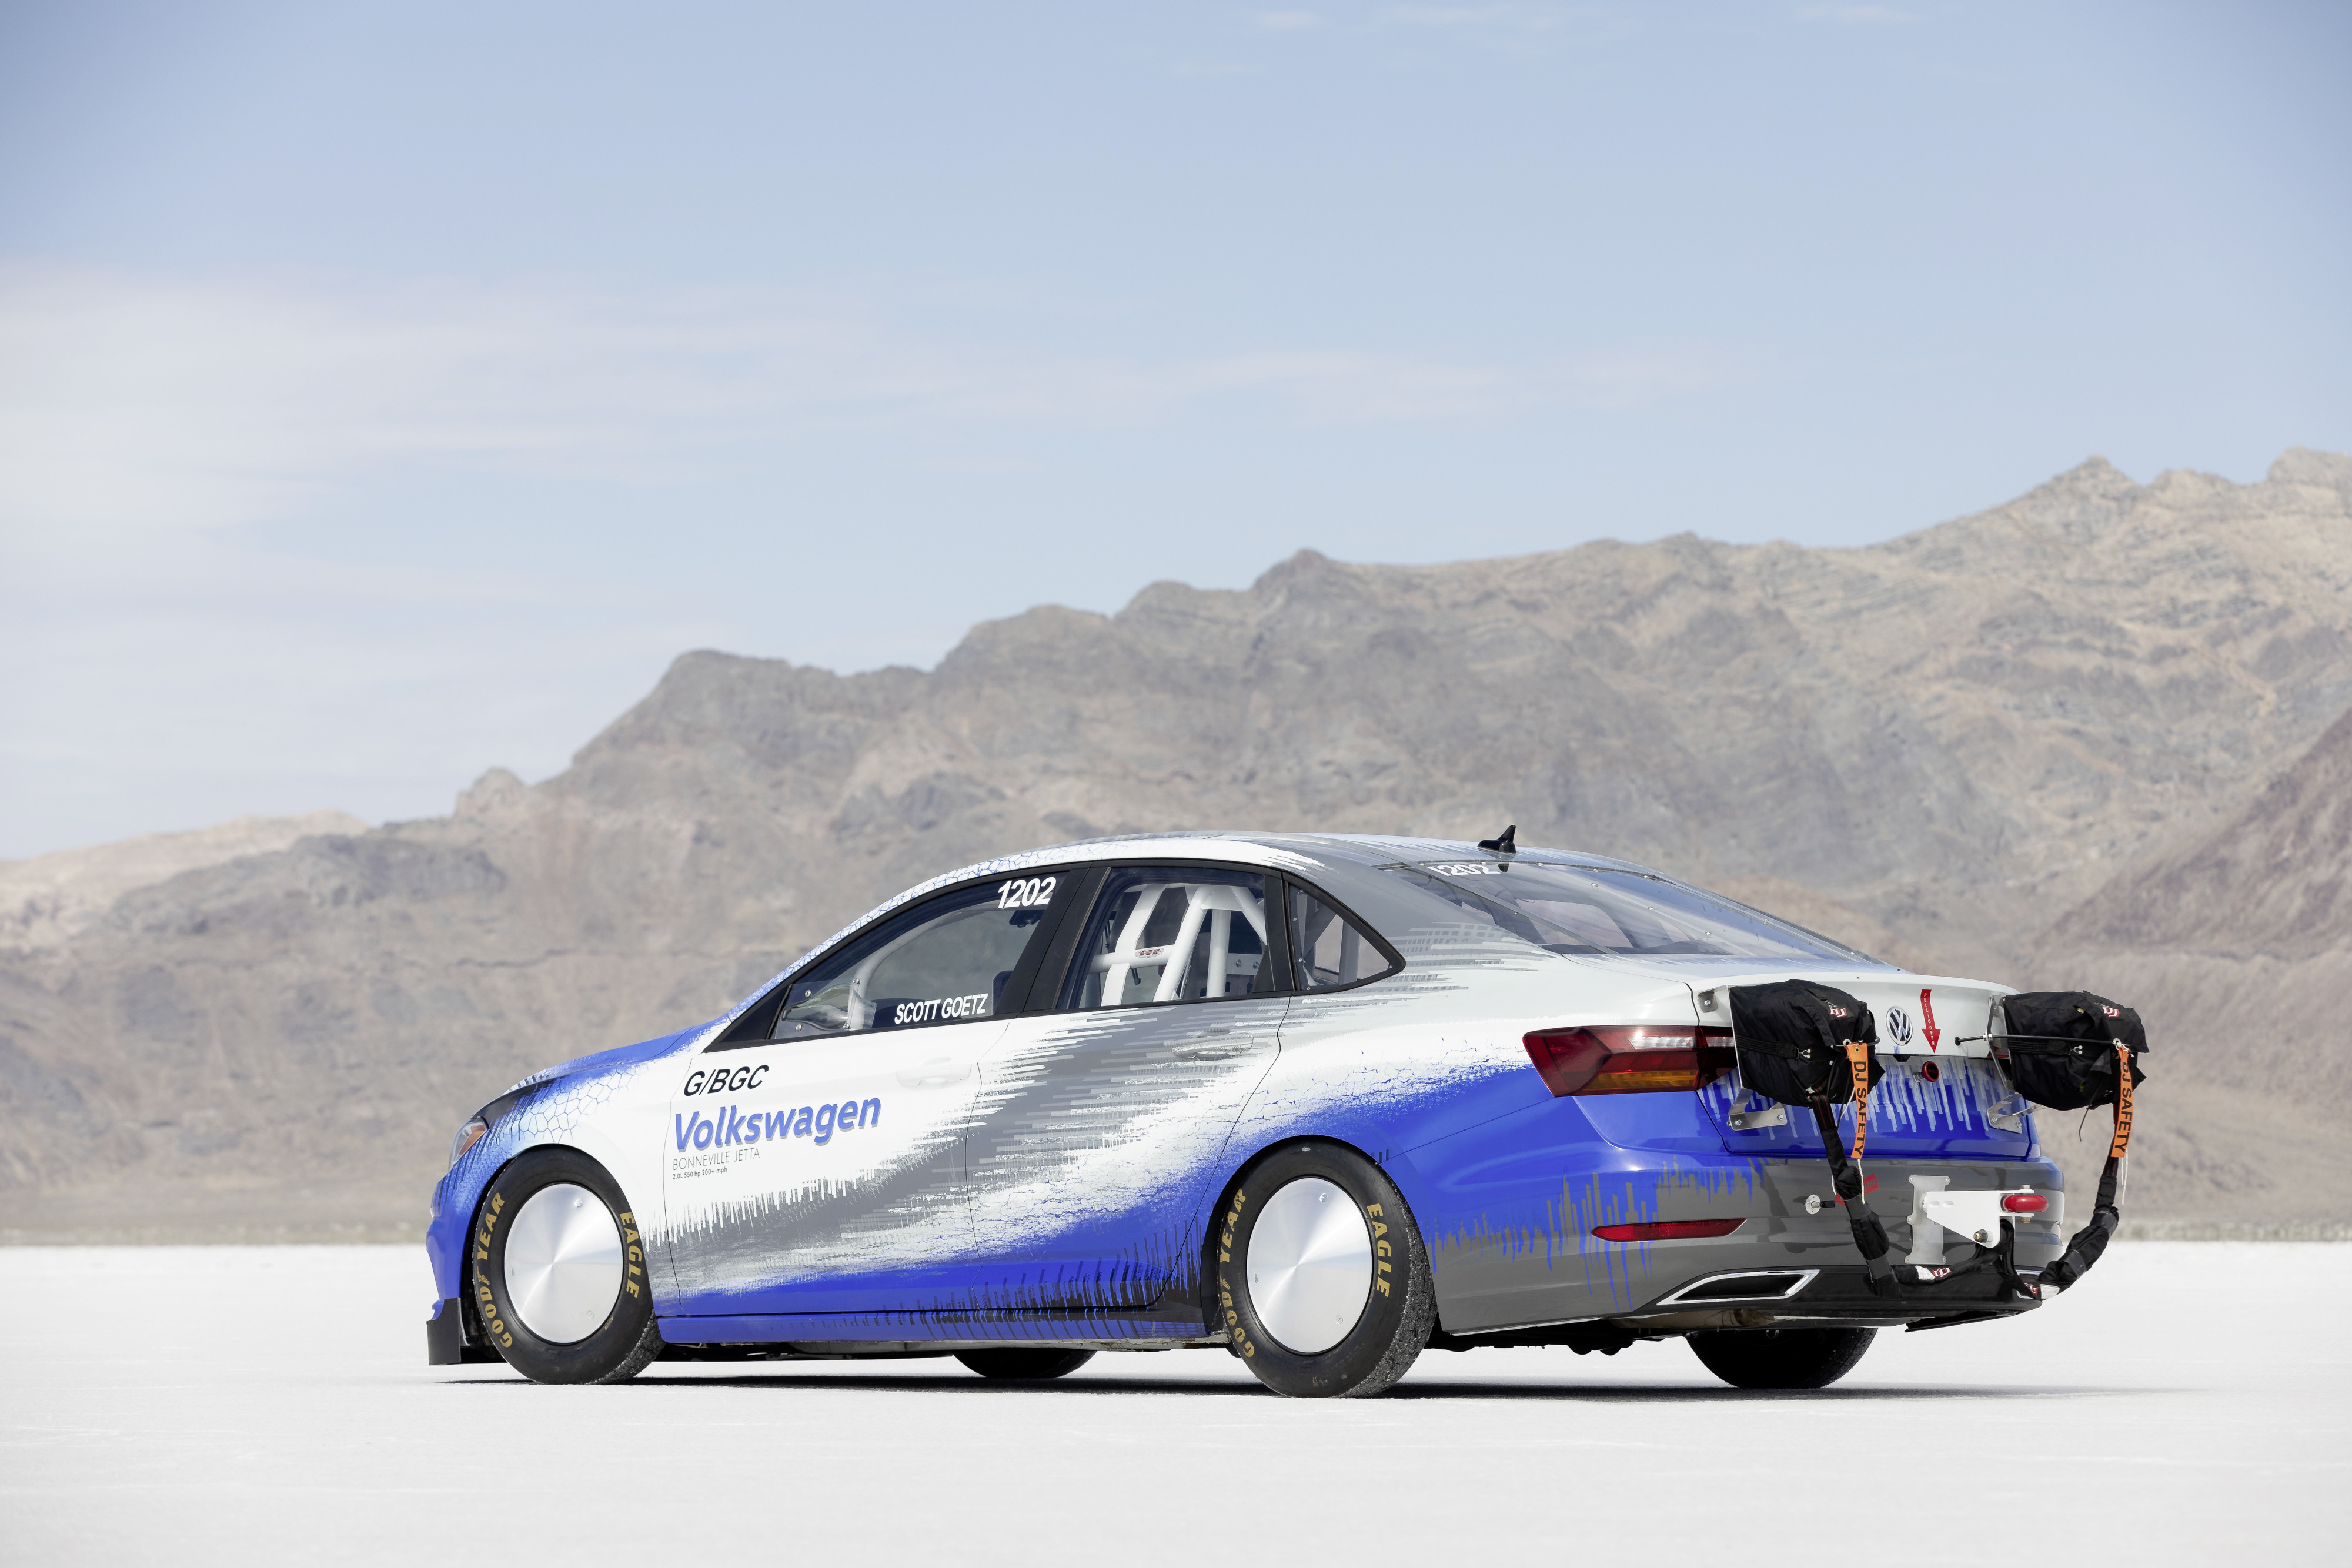 Modified Jetta breaks the speed record in its class in the USA with 338 km/h